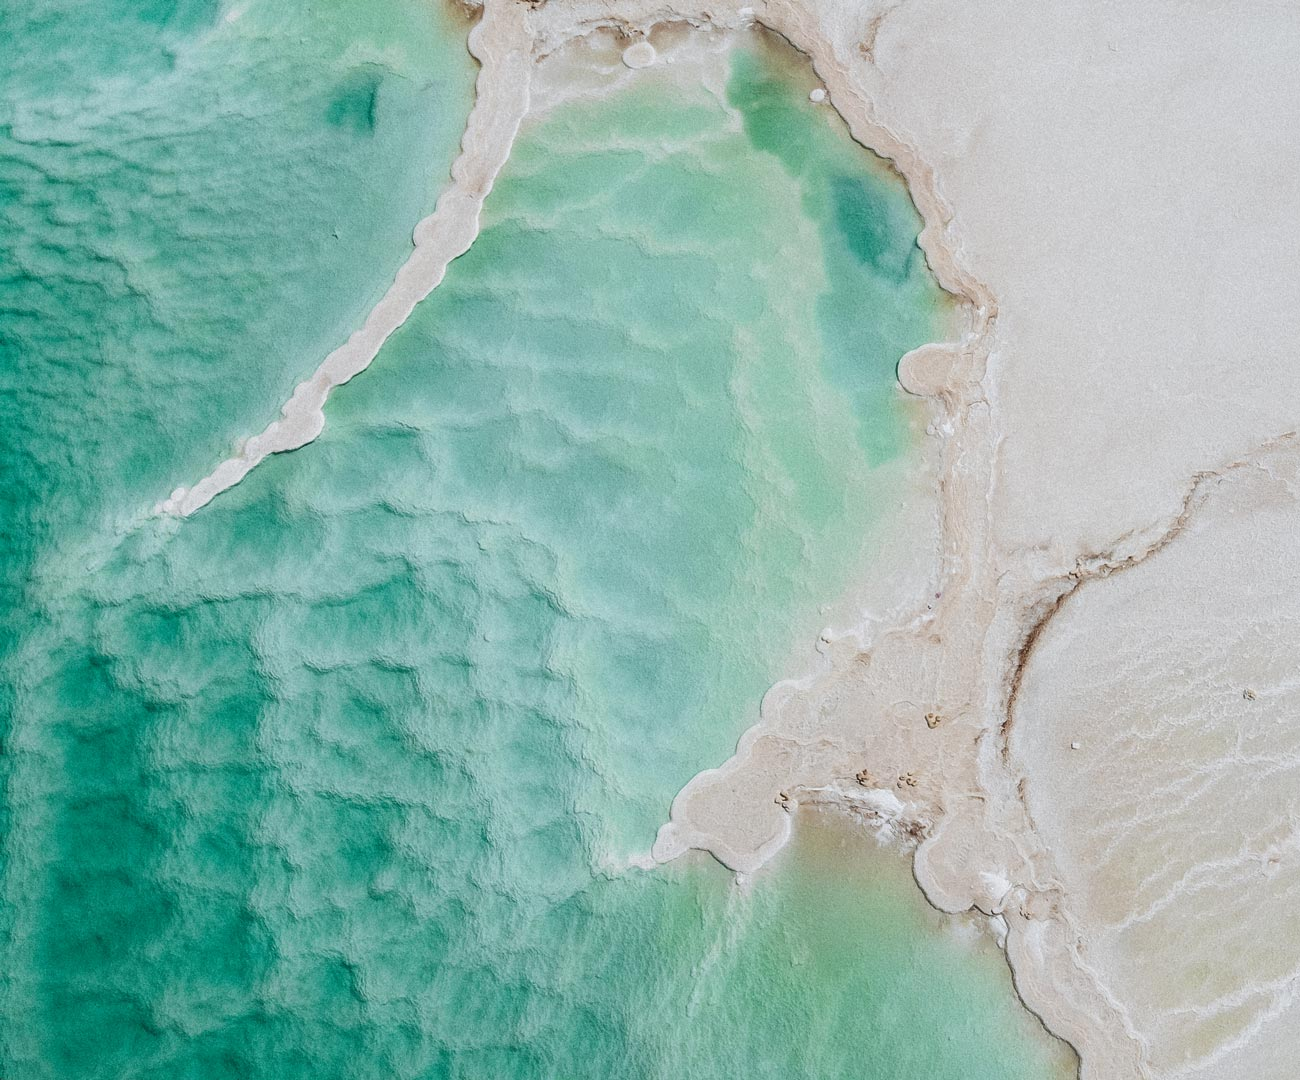 dead-sea-drone-picture-formations